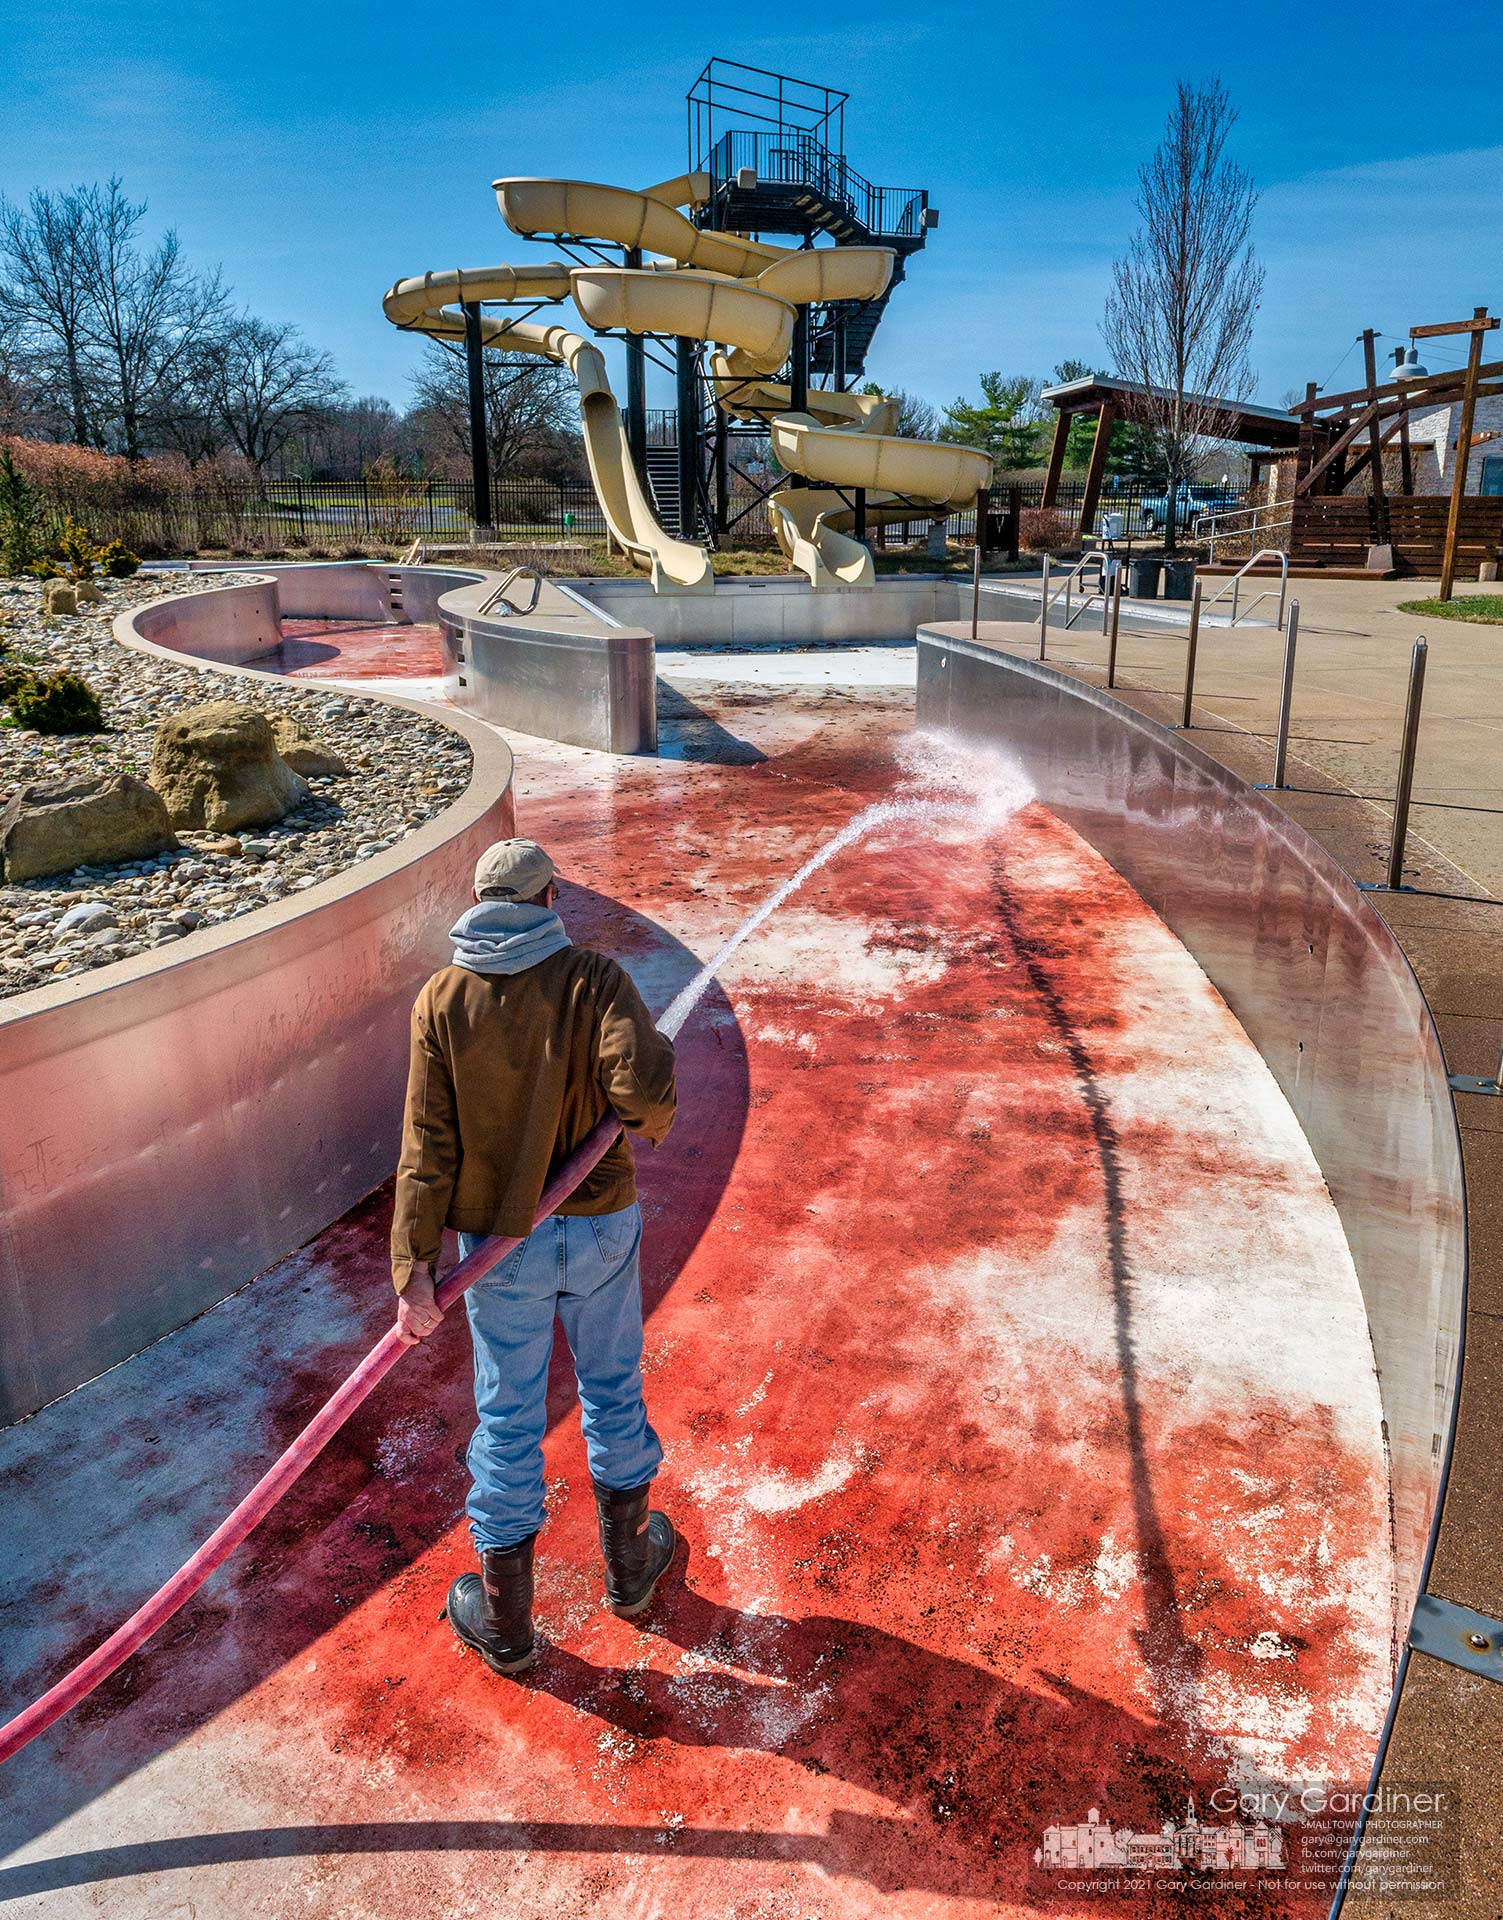 A Westerville Parks and Recreation worker sprays debris and dirt from the lazy river pool at Highlands Aquatic Center in preparation for possible opening this year after the pool stayed closed last year because of the pandemic. My Final Photo for March 22, 2021.